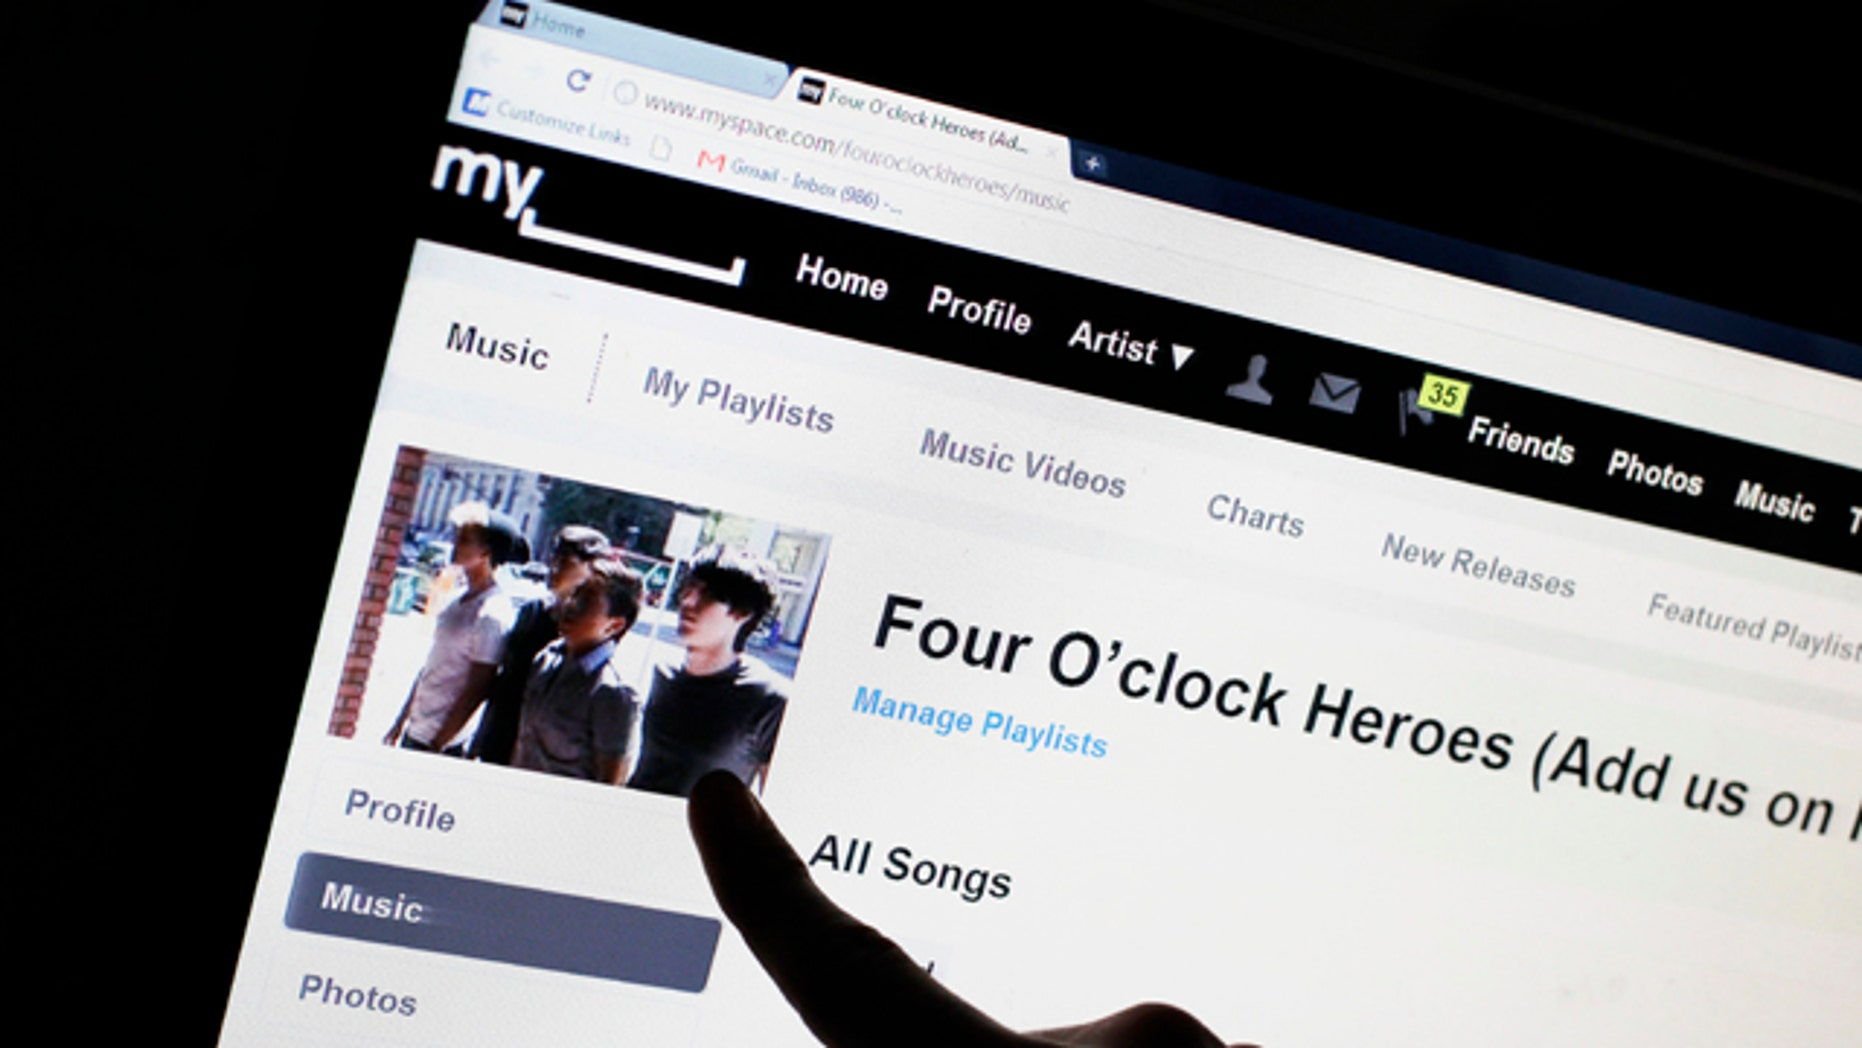 June 29, 2011: Bass guitarist Cameron Schnittger, with the pop rock band Four O'clock Heroes, points to his picture on on the bands' MySpace web site page in San Jose, Calif. News Corp. has sold the struggling social networking site for $35 million, mostly in stock, according to a person familiar with the matter.